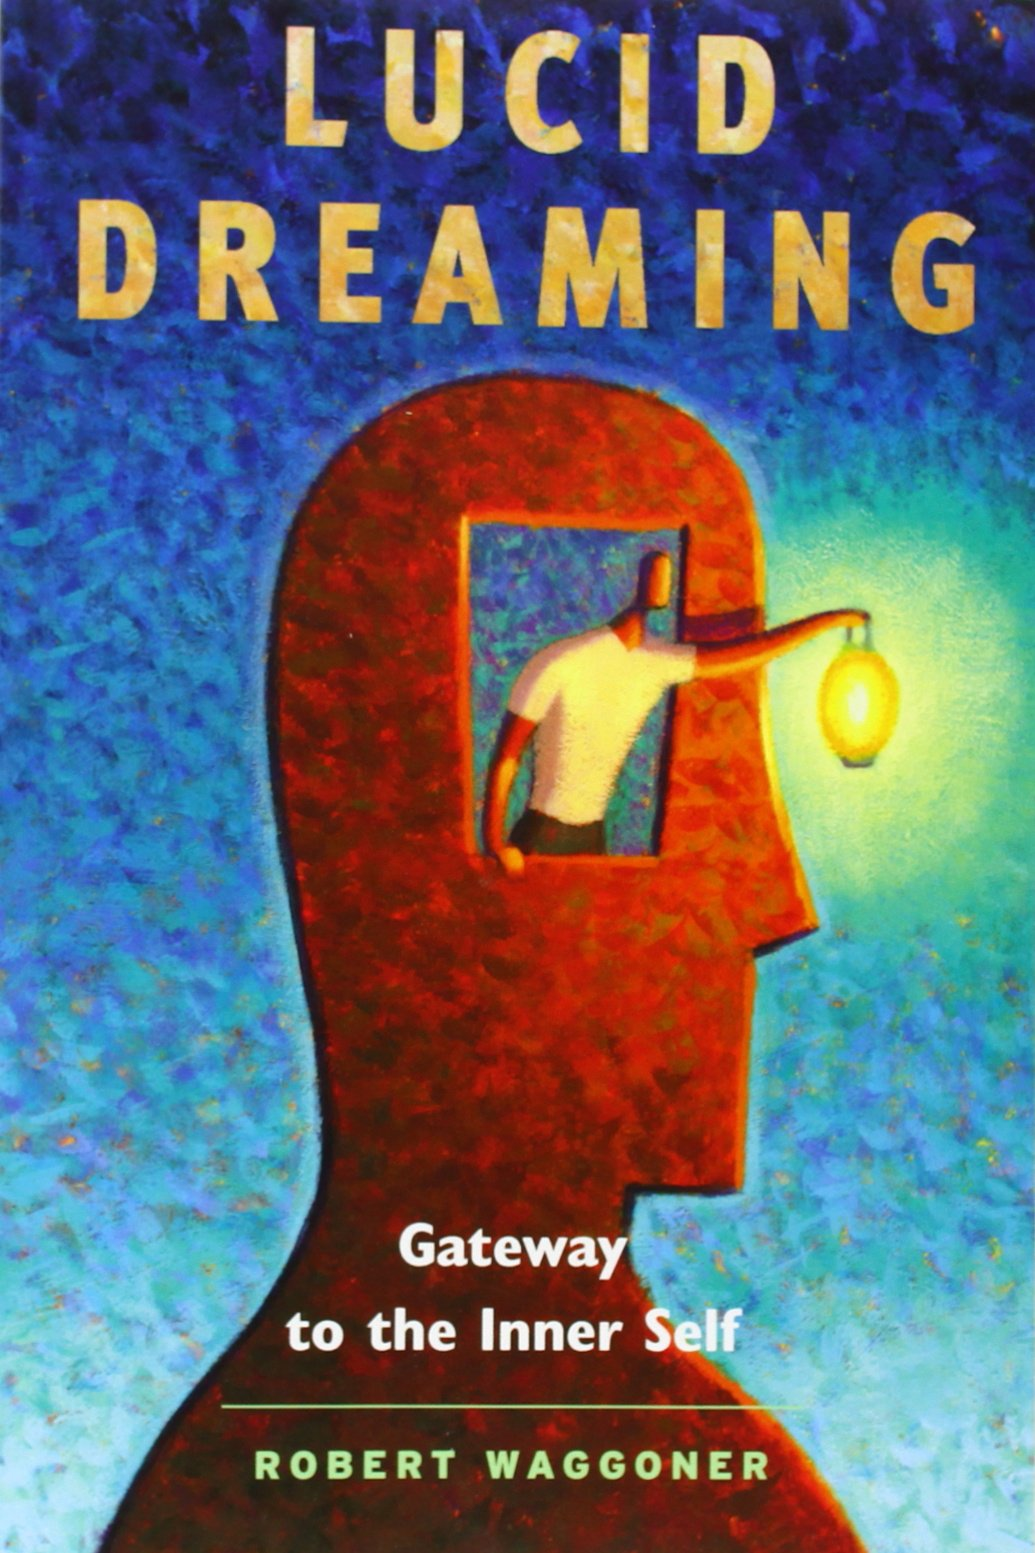 Lucid Dreaming Gateway to the Inner Self - Robert Waggoner